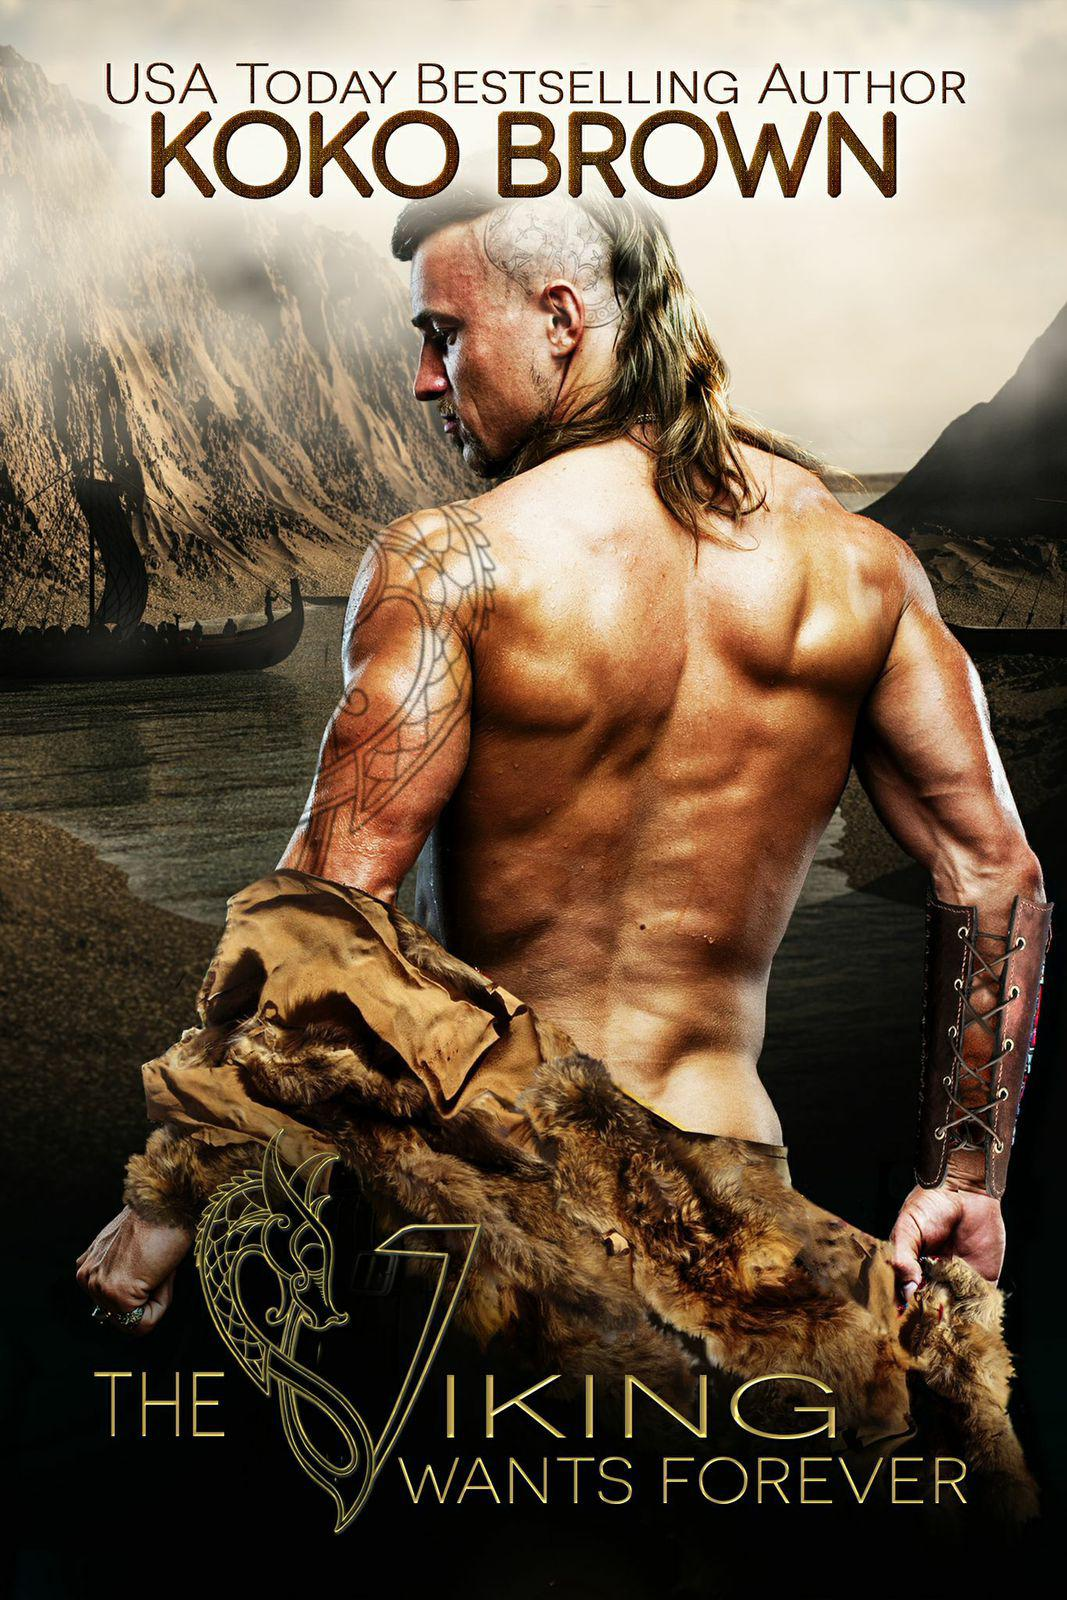 Top Ten Reasons To Love A Viking By Koko Brown Author Of The Viking Wants Forever